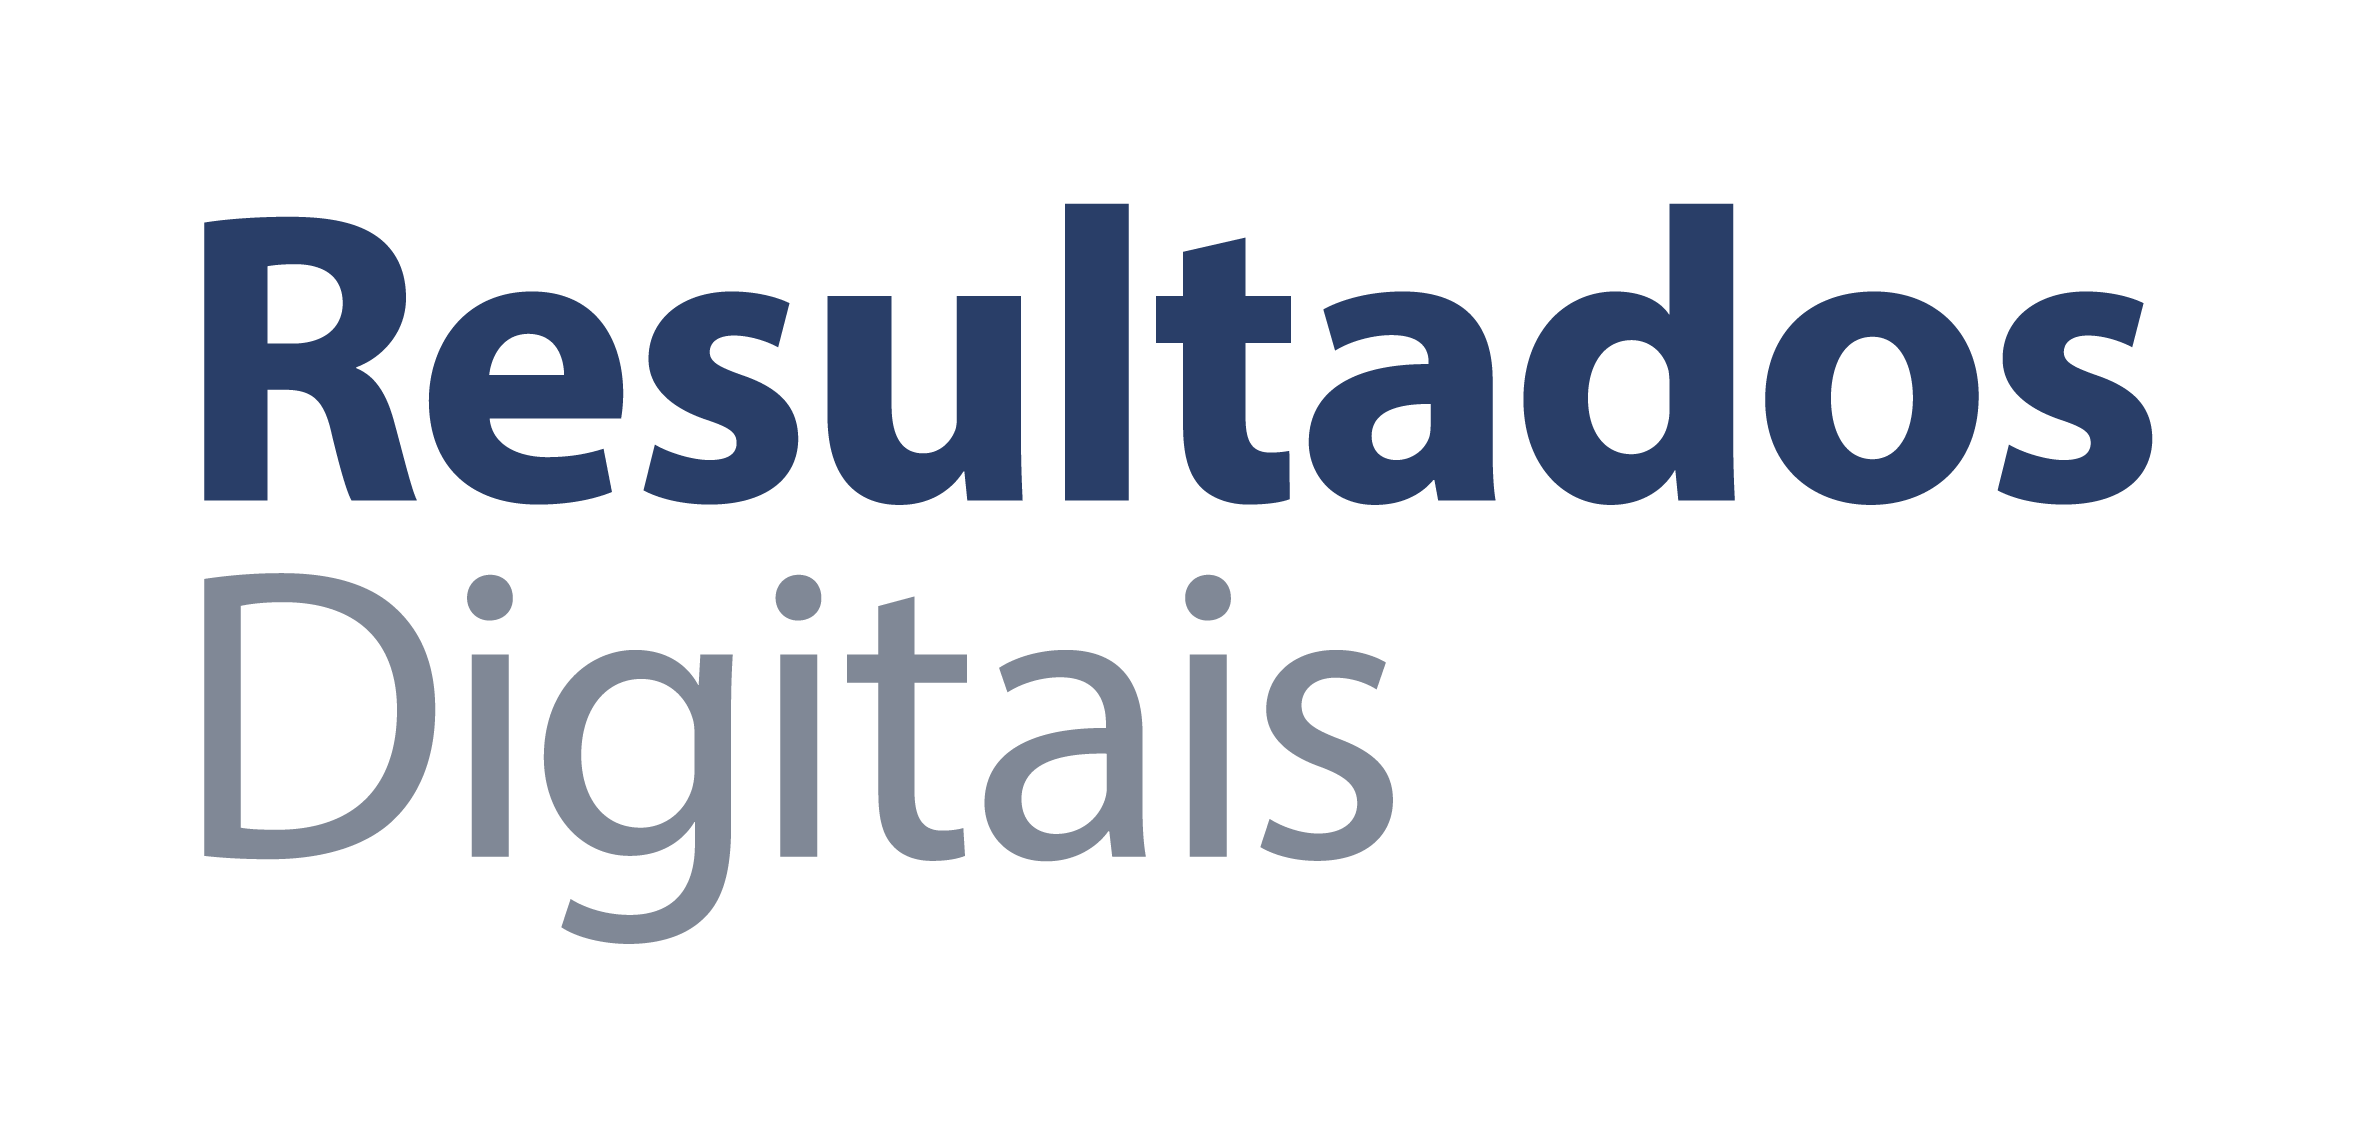 Resultados Digitais